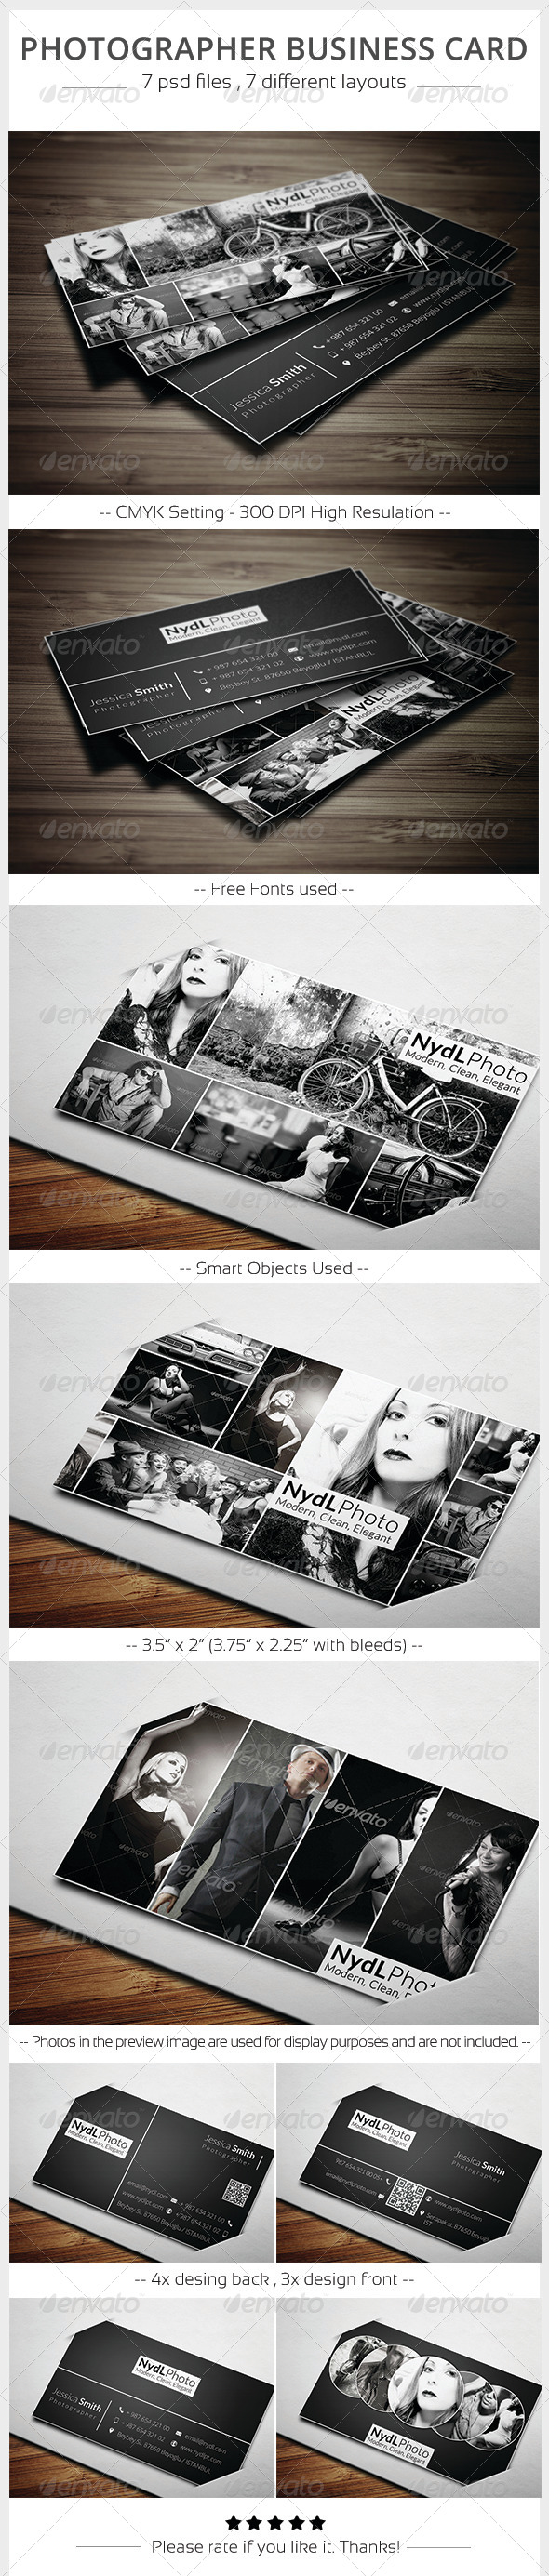 GraphicRiver Photographer Business Card 5882569